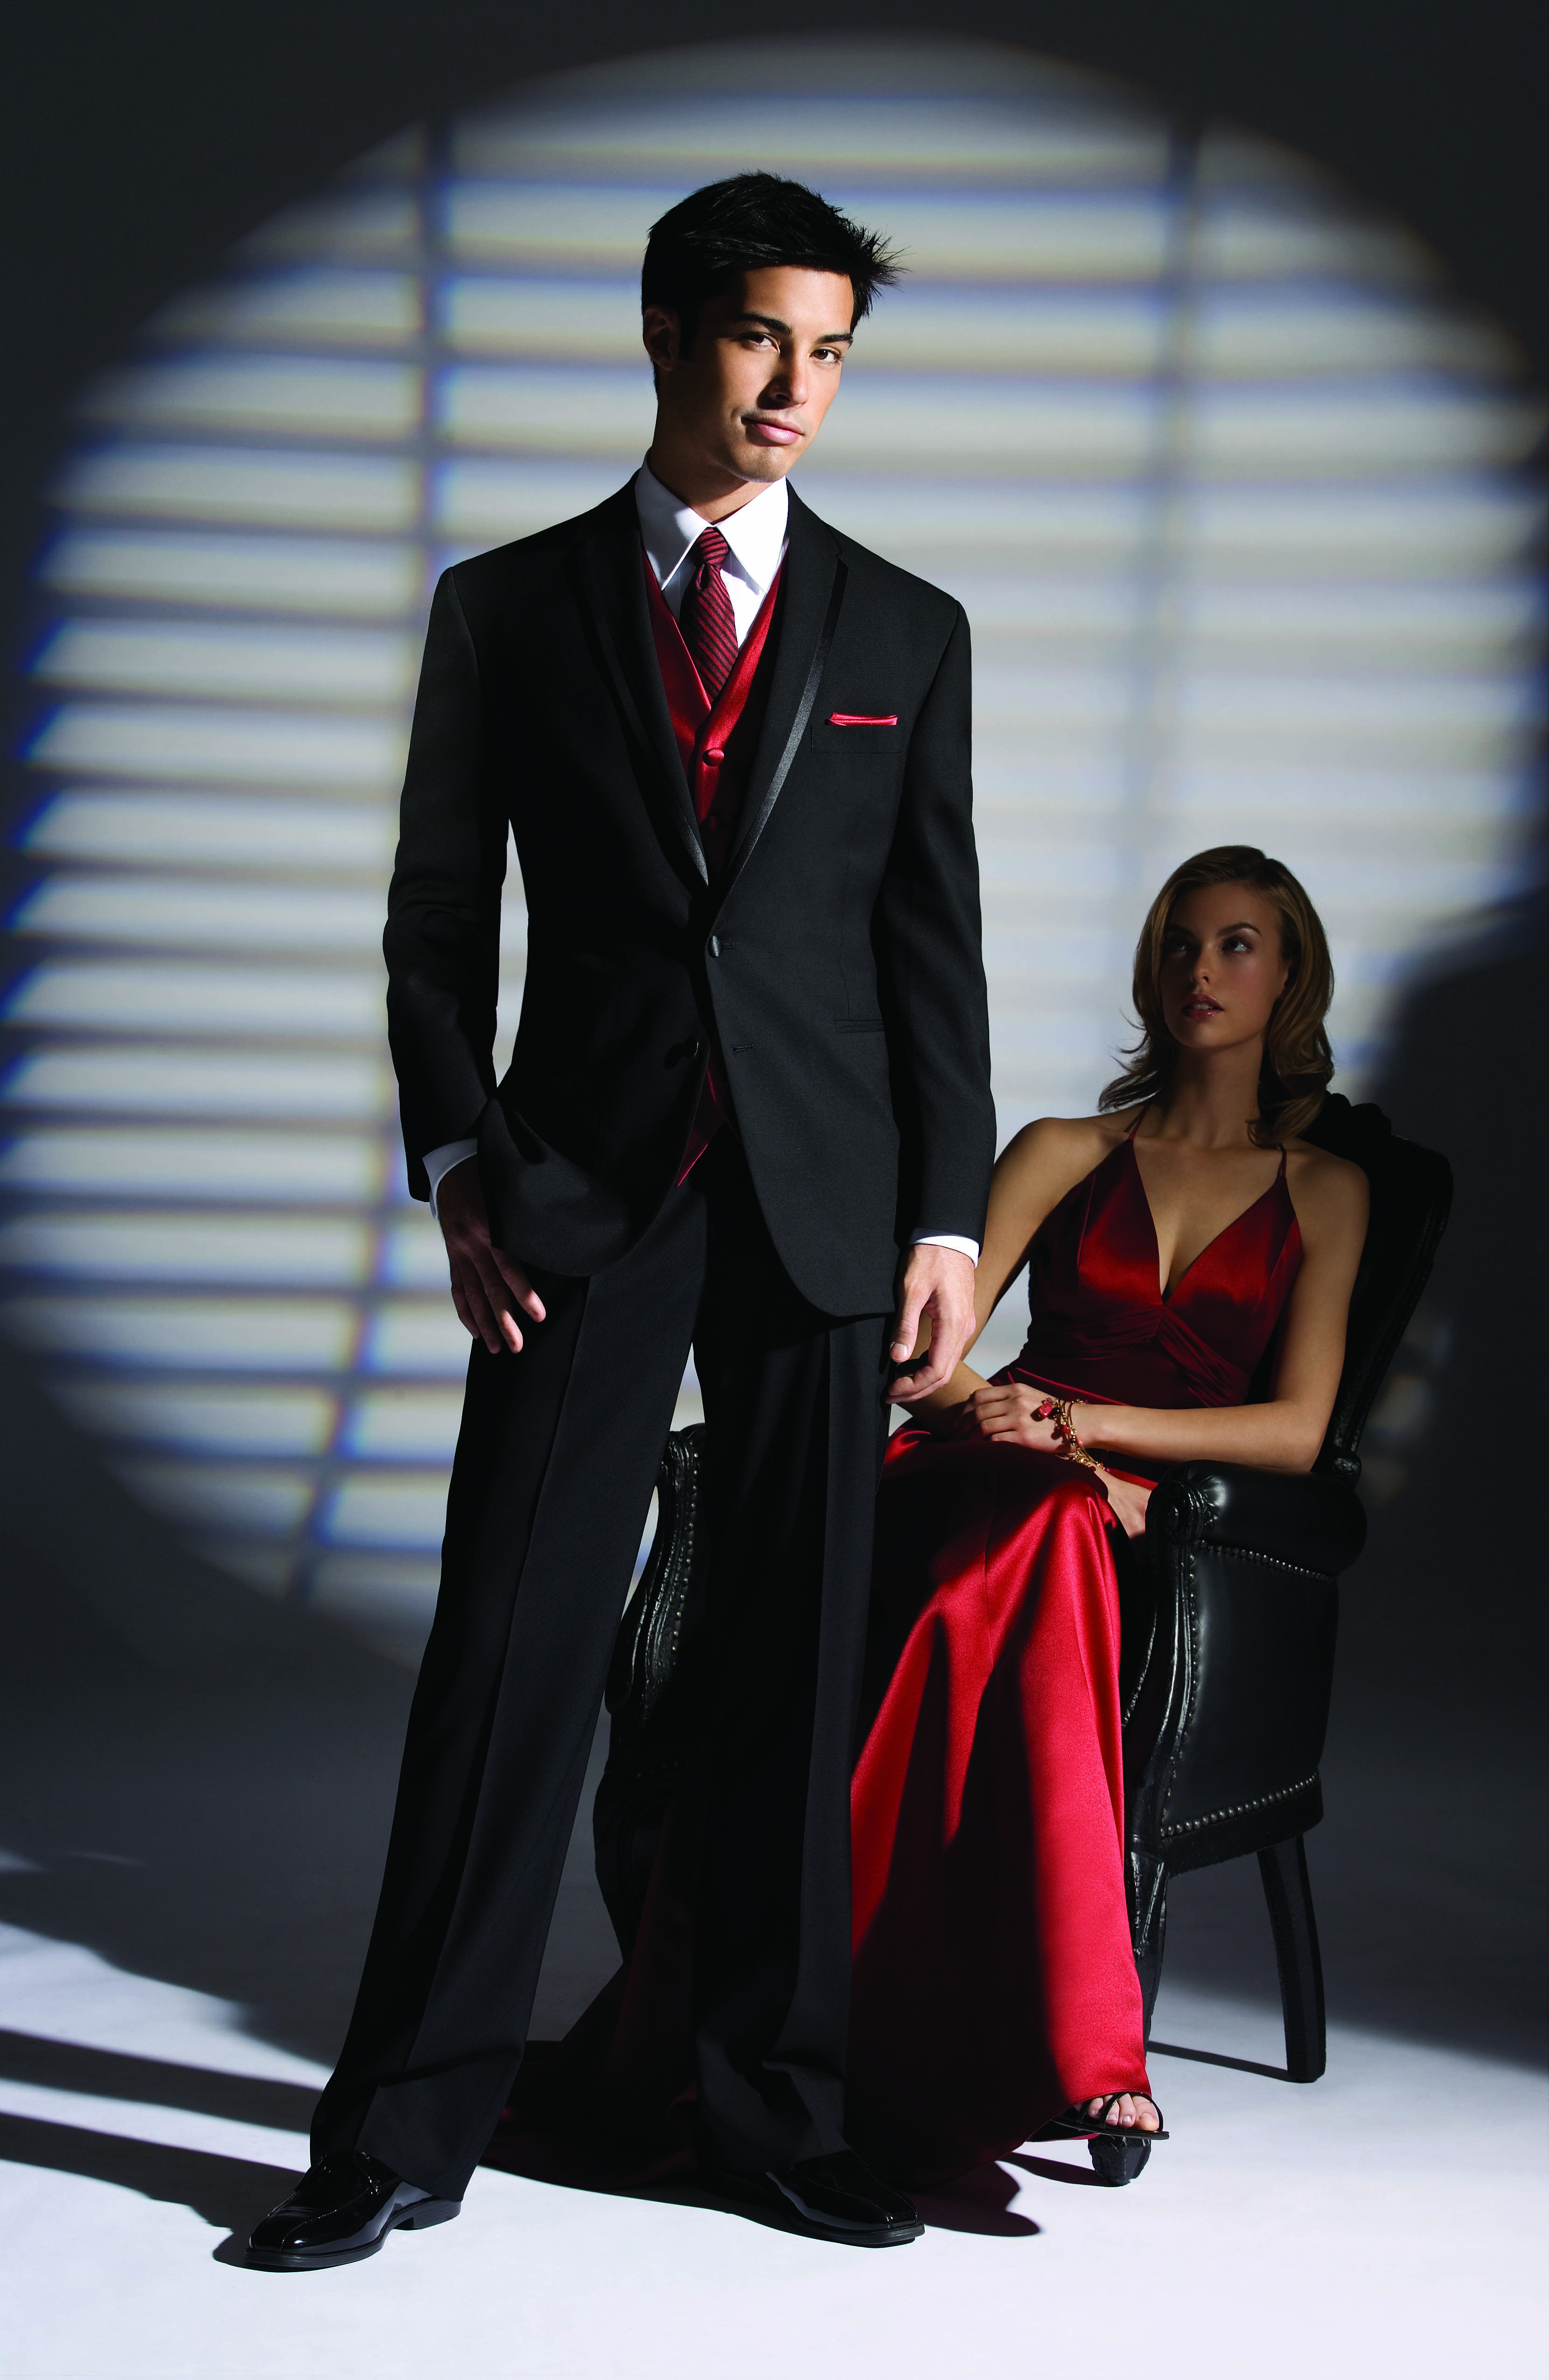 Black Tuxedo With Red Tie Google Search Wedding Pinterest